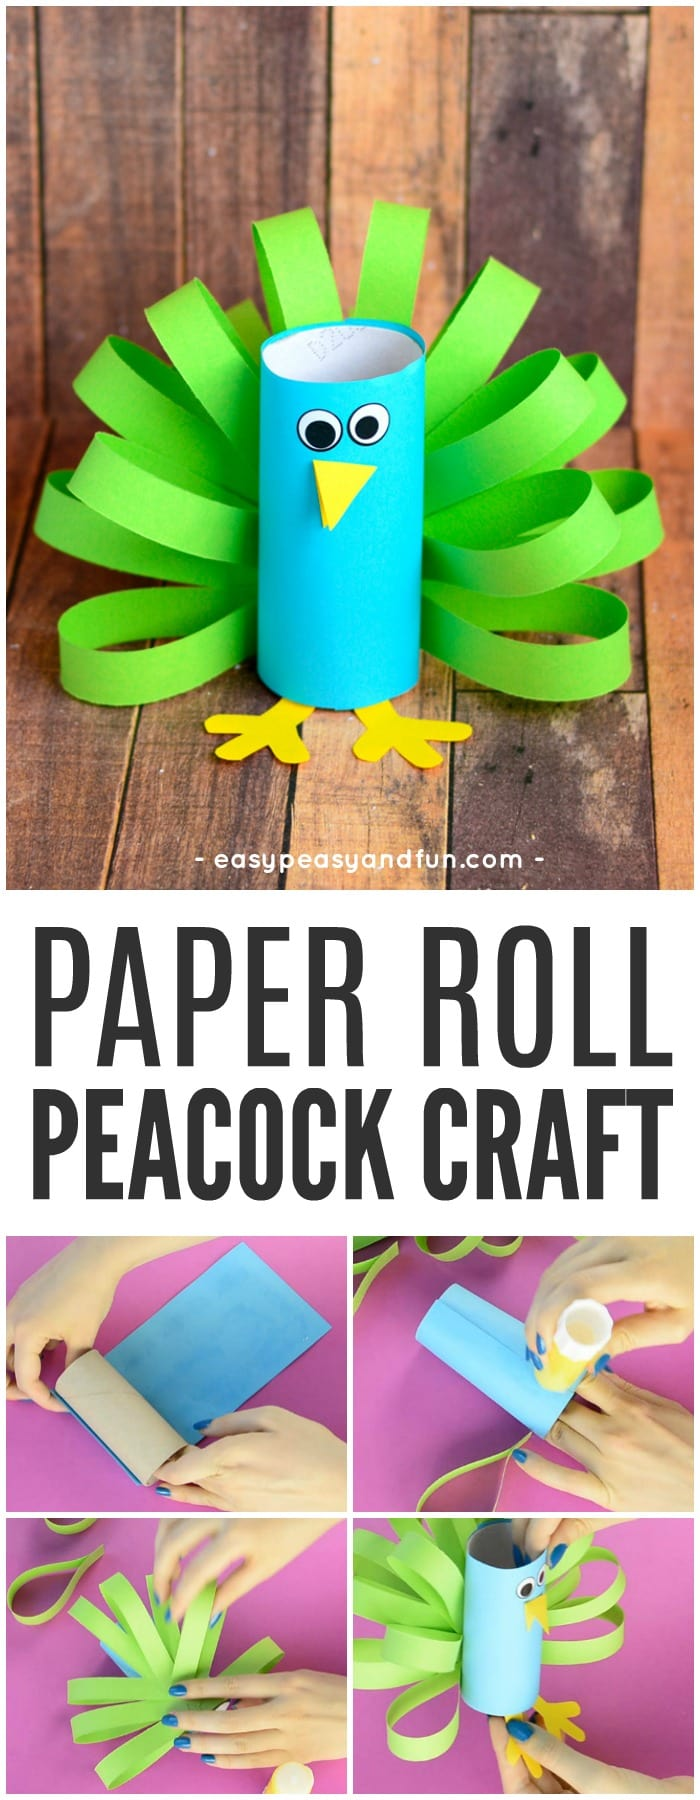 Toilet Paper Roll Peacock Craft for Kids